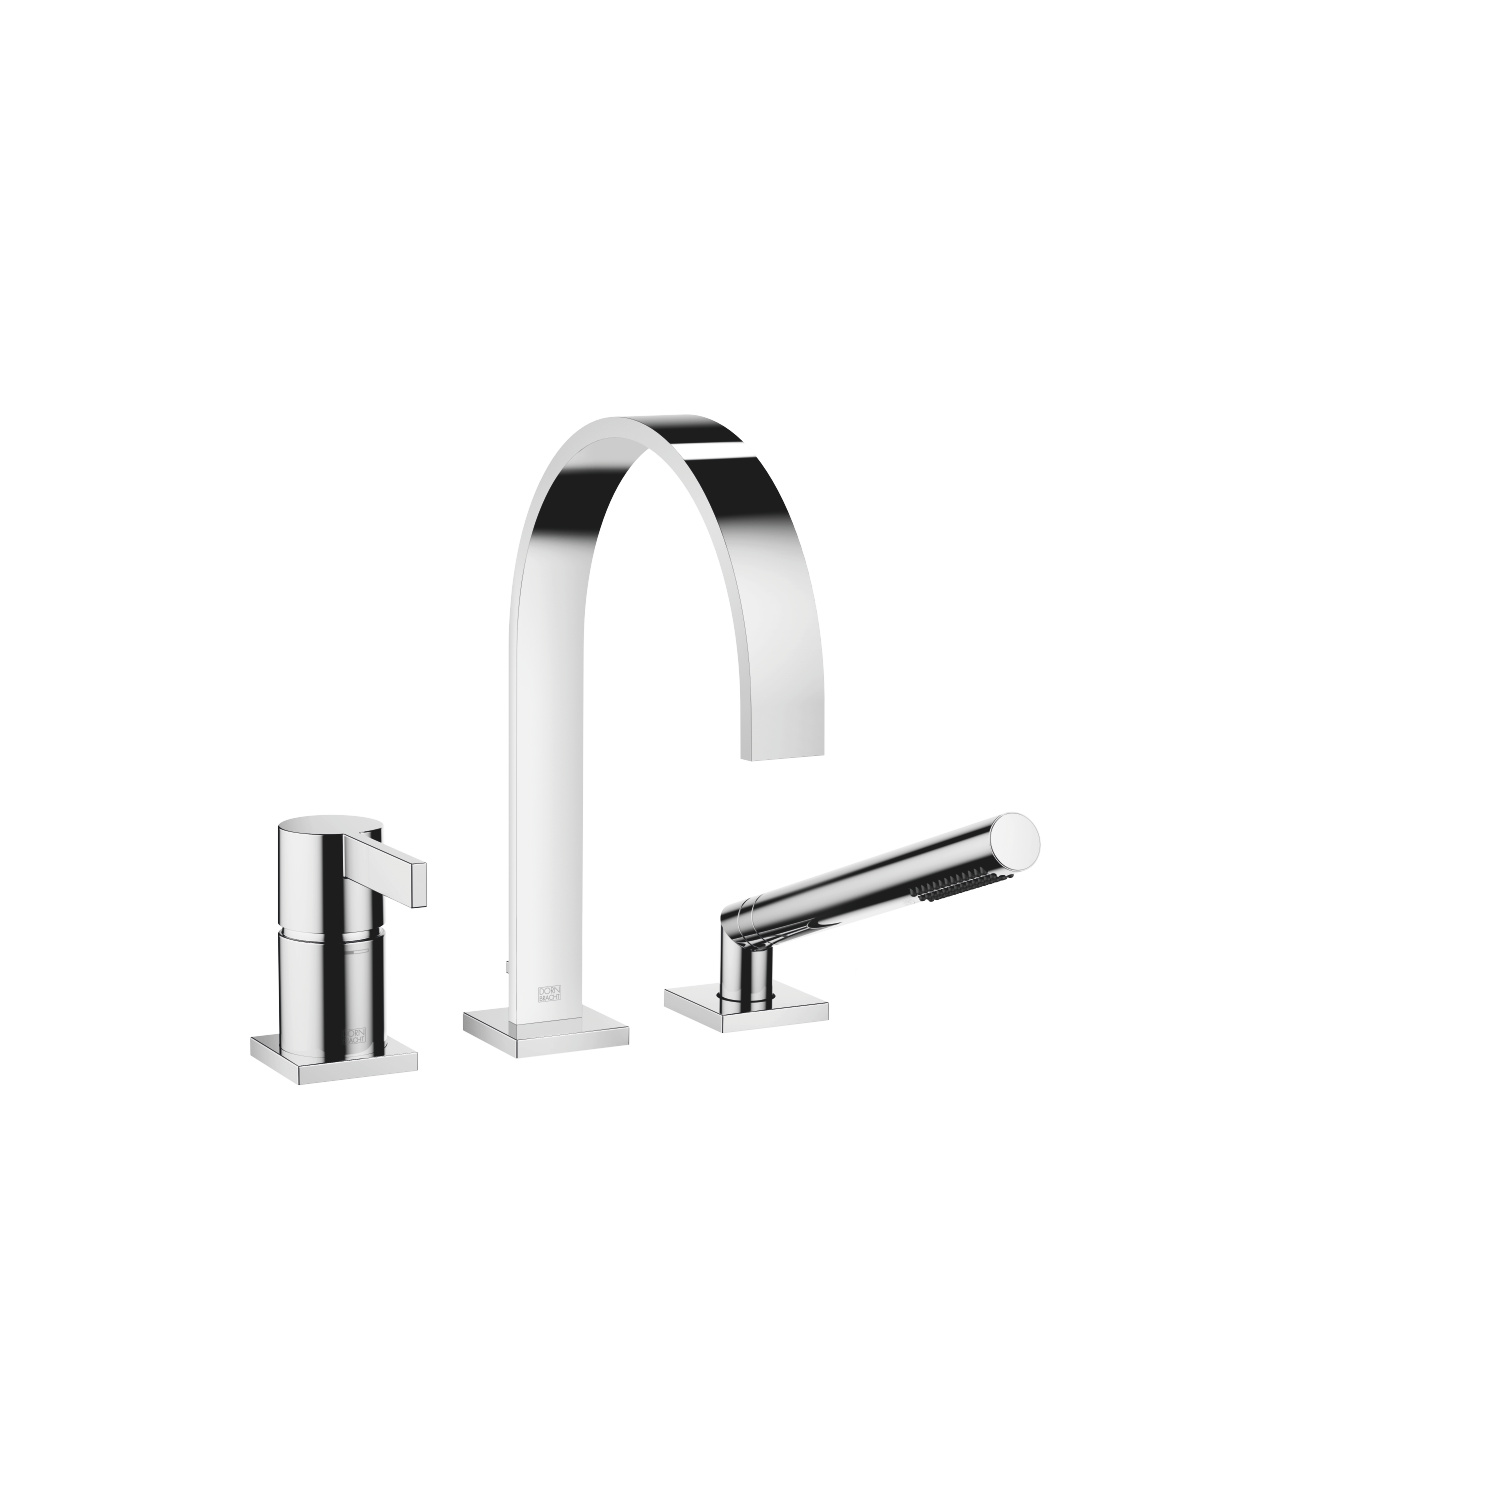 Three-hole single-lever bath mixer for bath rim or tile edge installation - polished chrome - 27 412 782-00